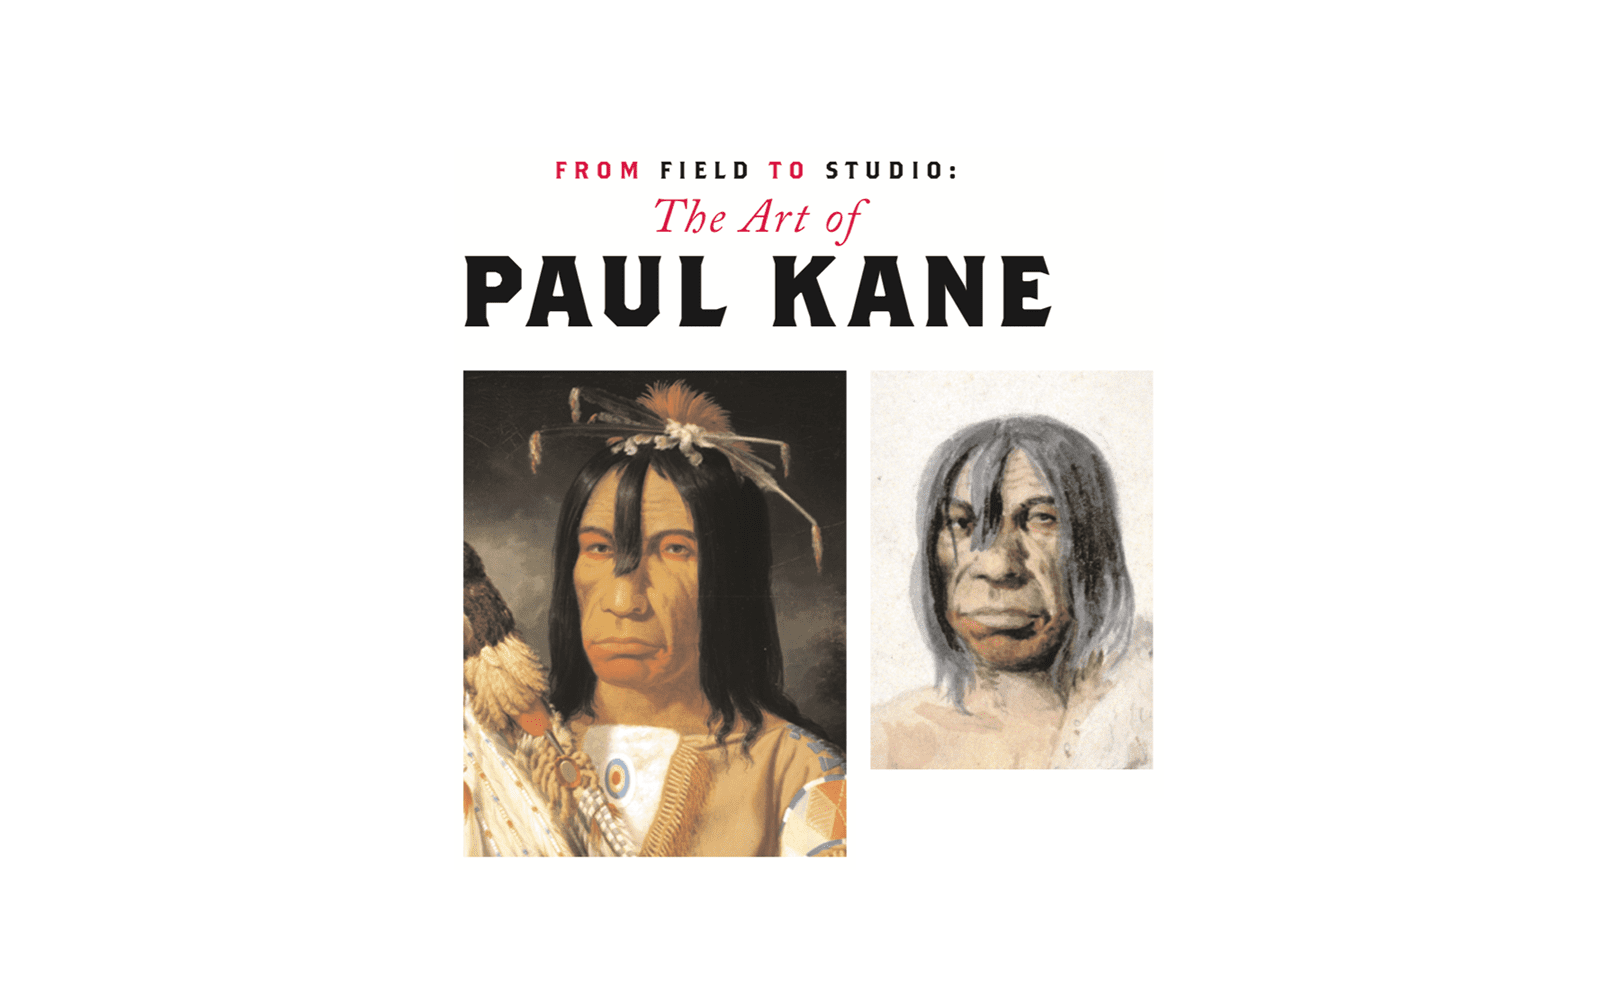 art as paukl kane